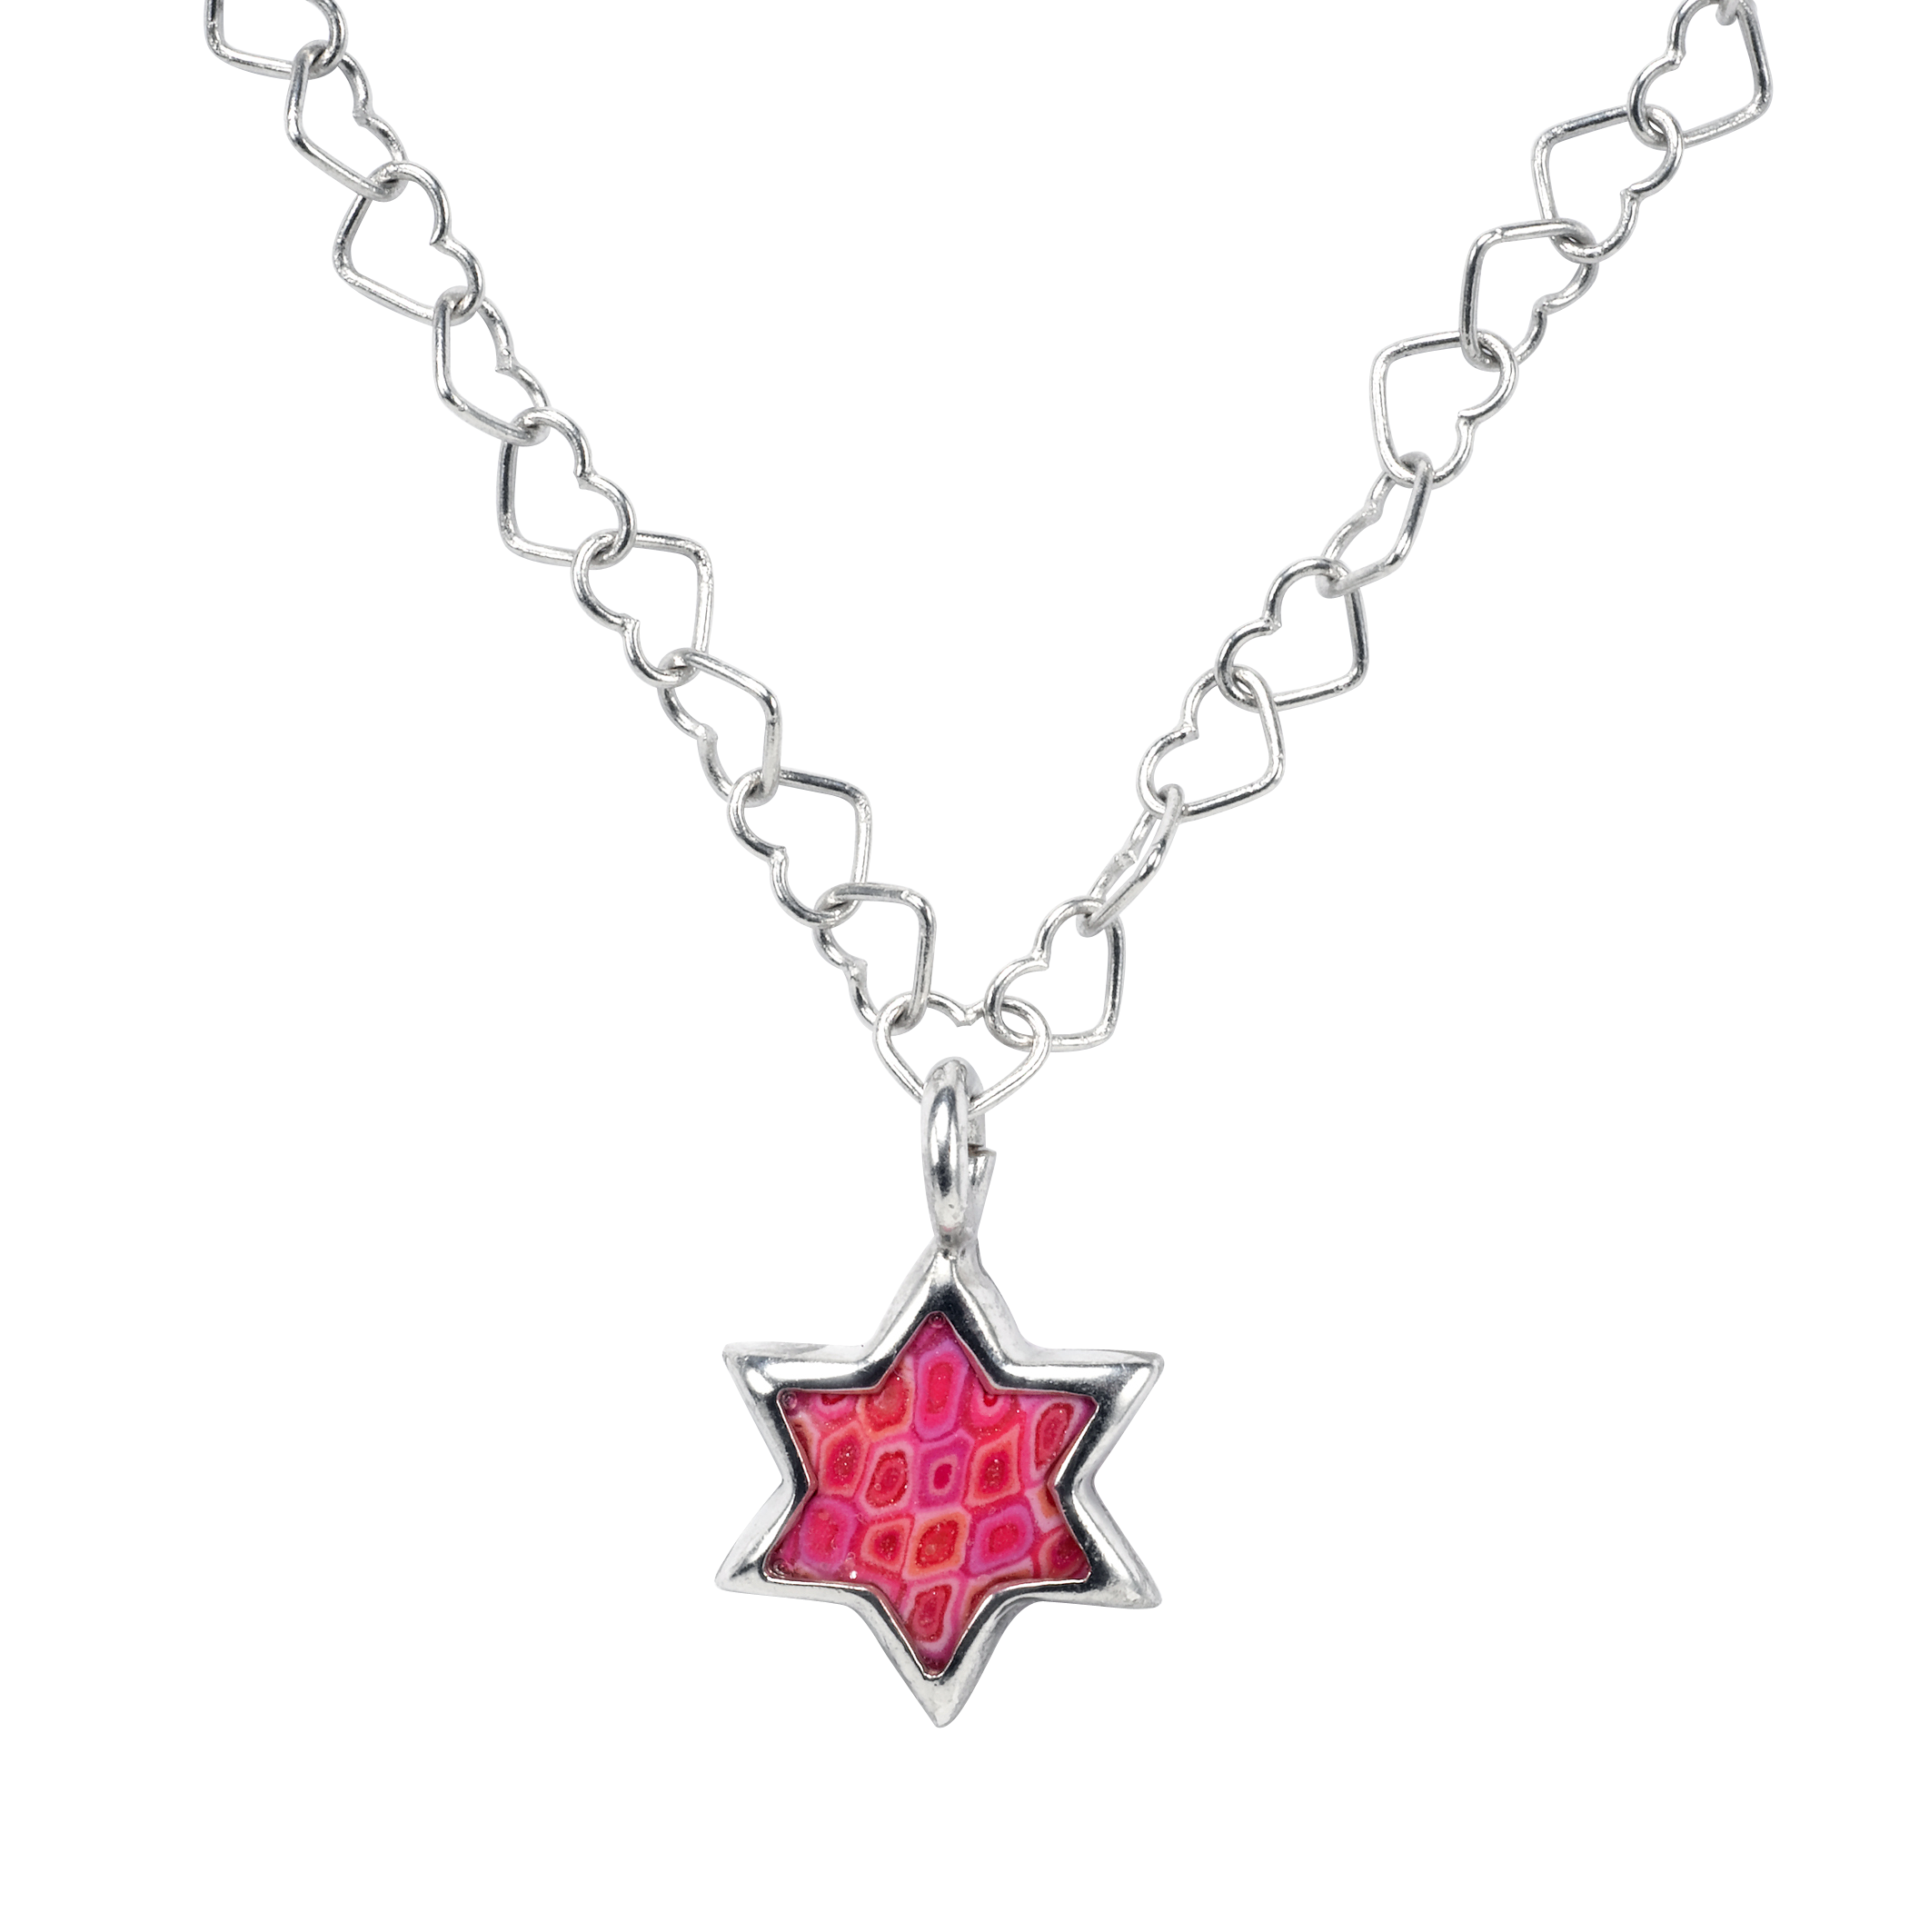 Star of david necklace png. Pink pendant with heart